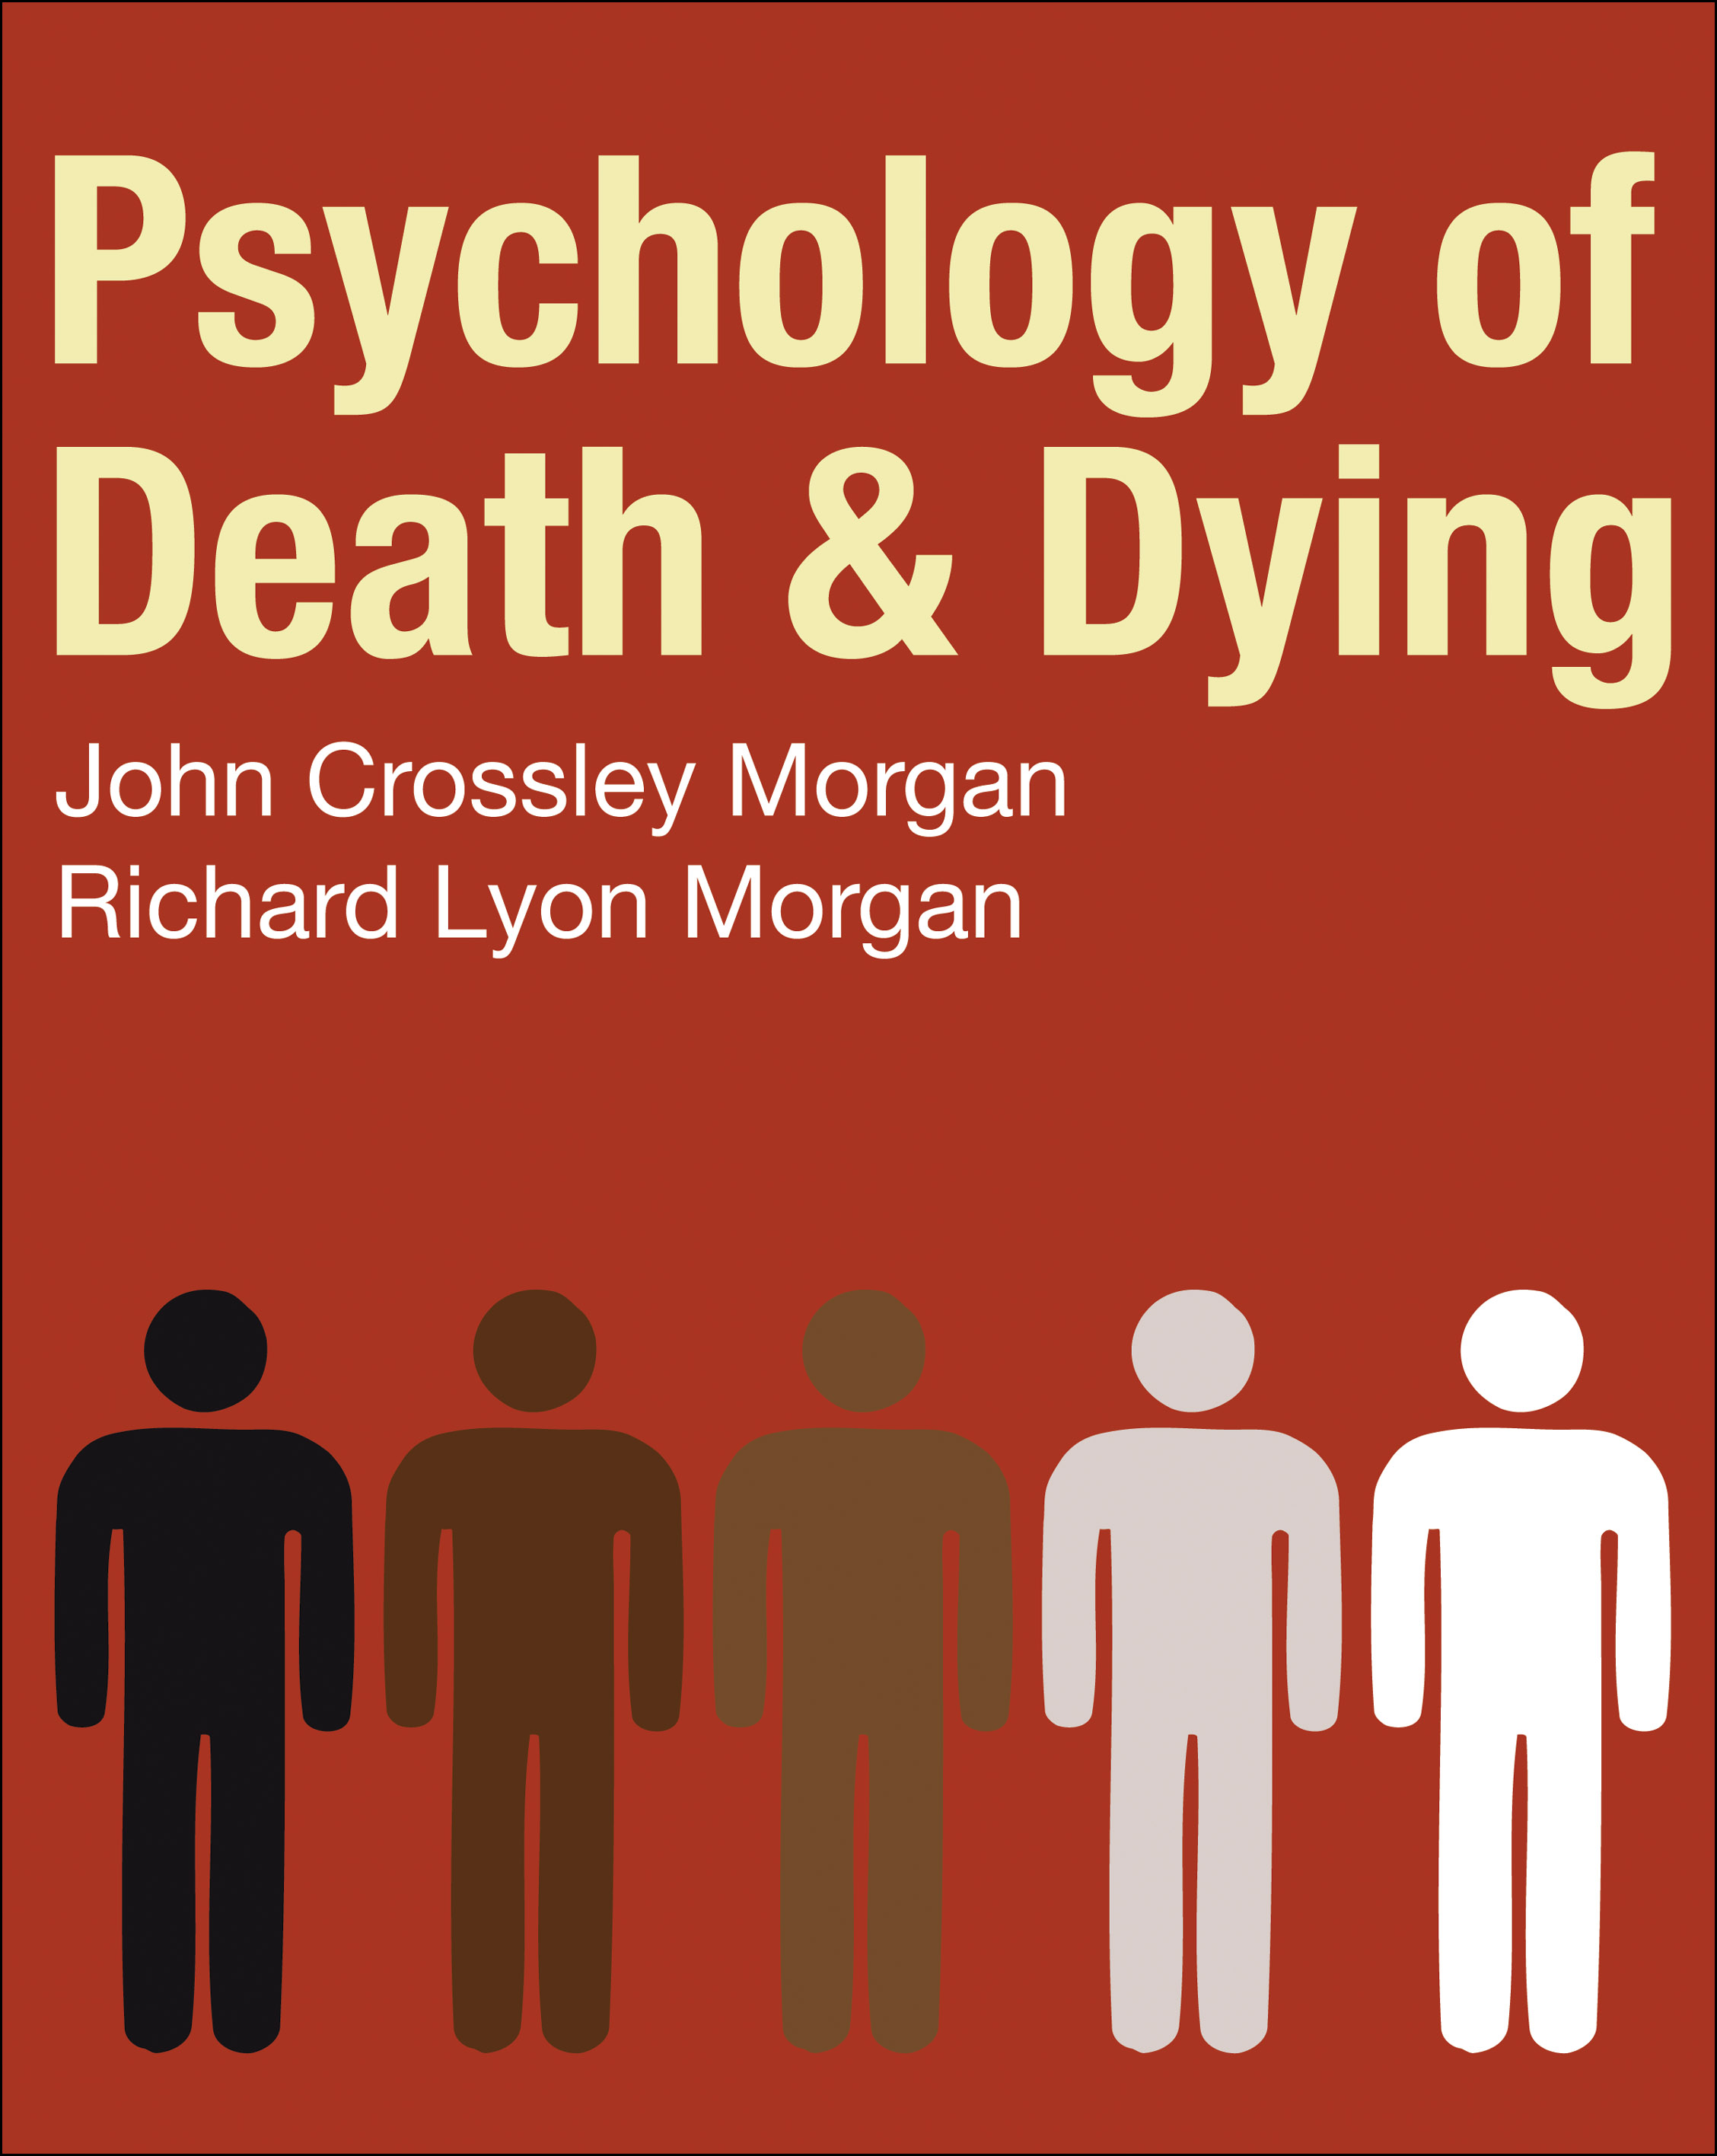 the psychology of facing death Branches of psychology the stages of grief are commonly referred to as the 5 stages of dying, as referred to in her book on death and dying.